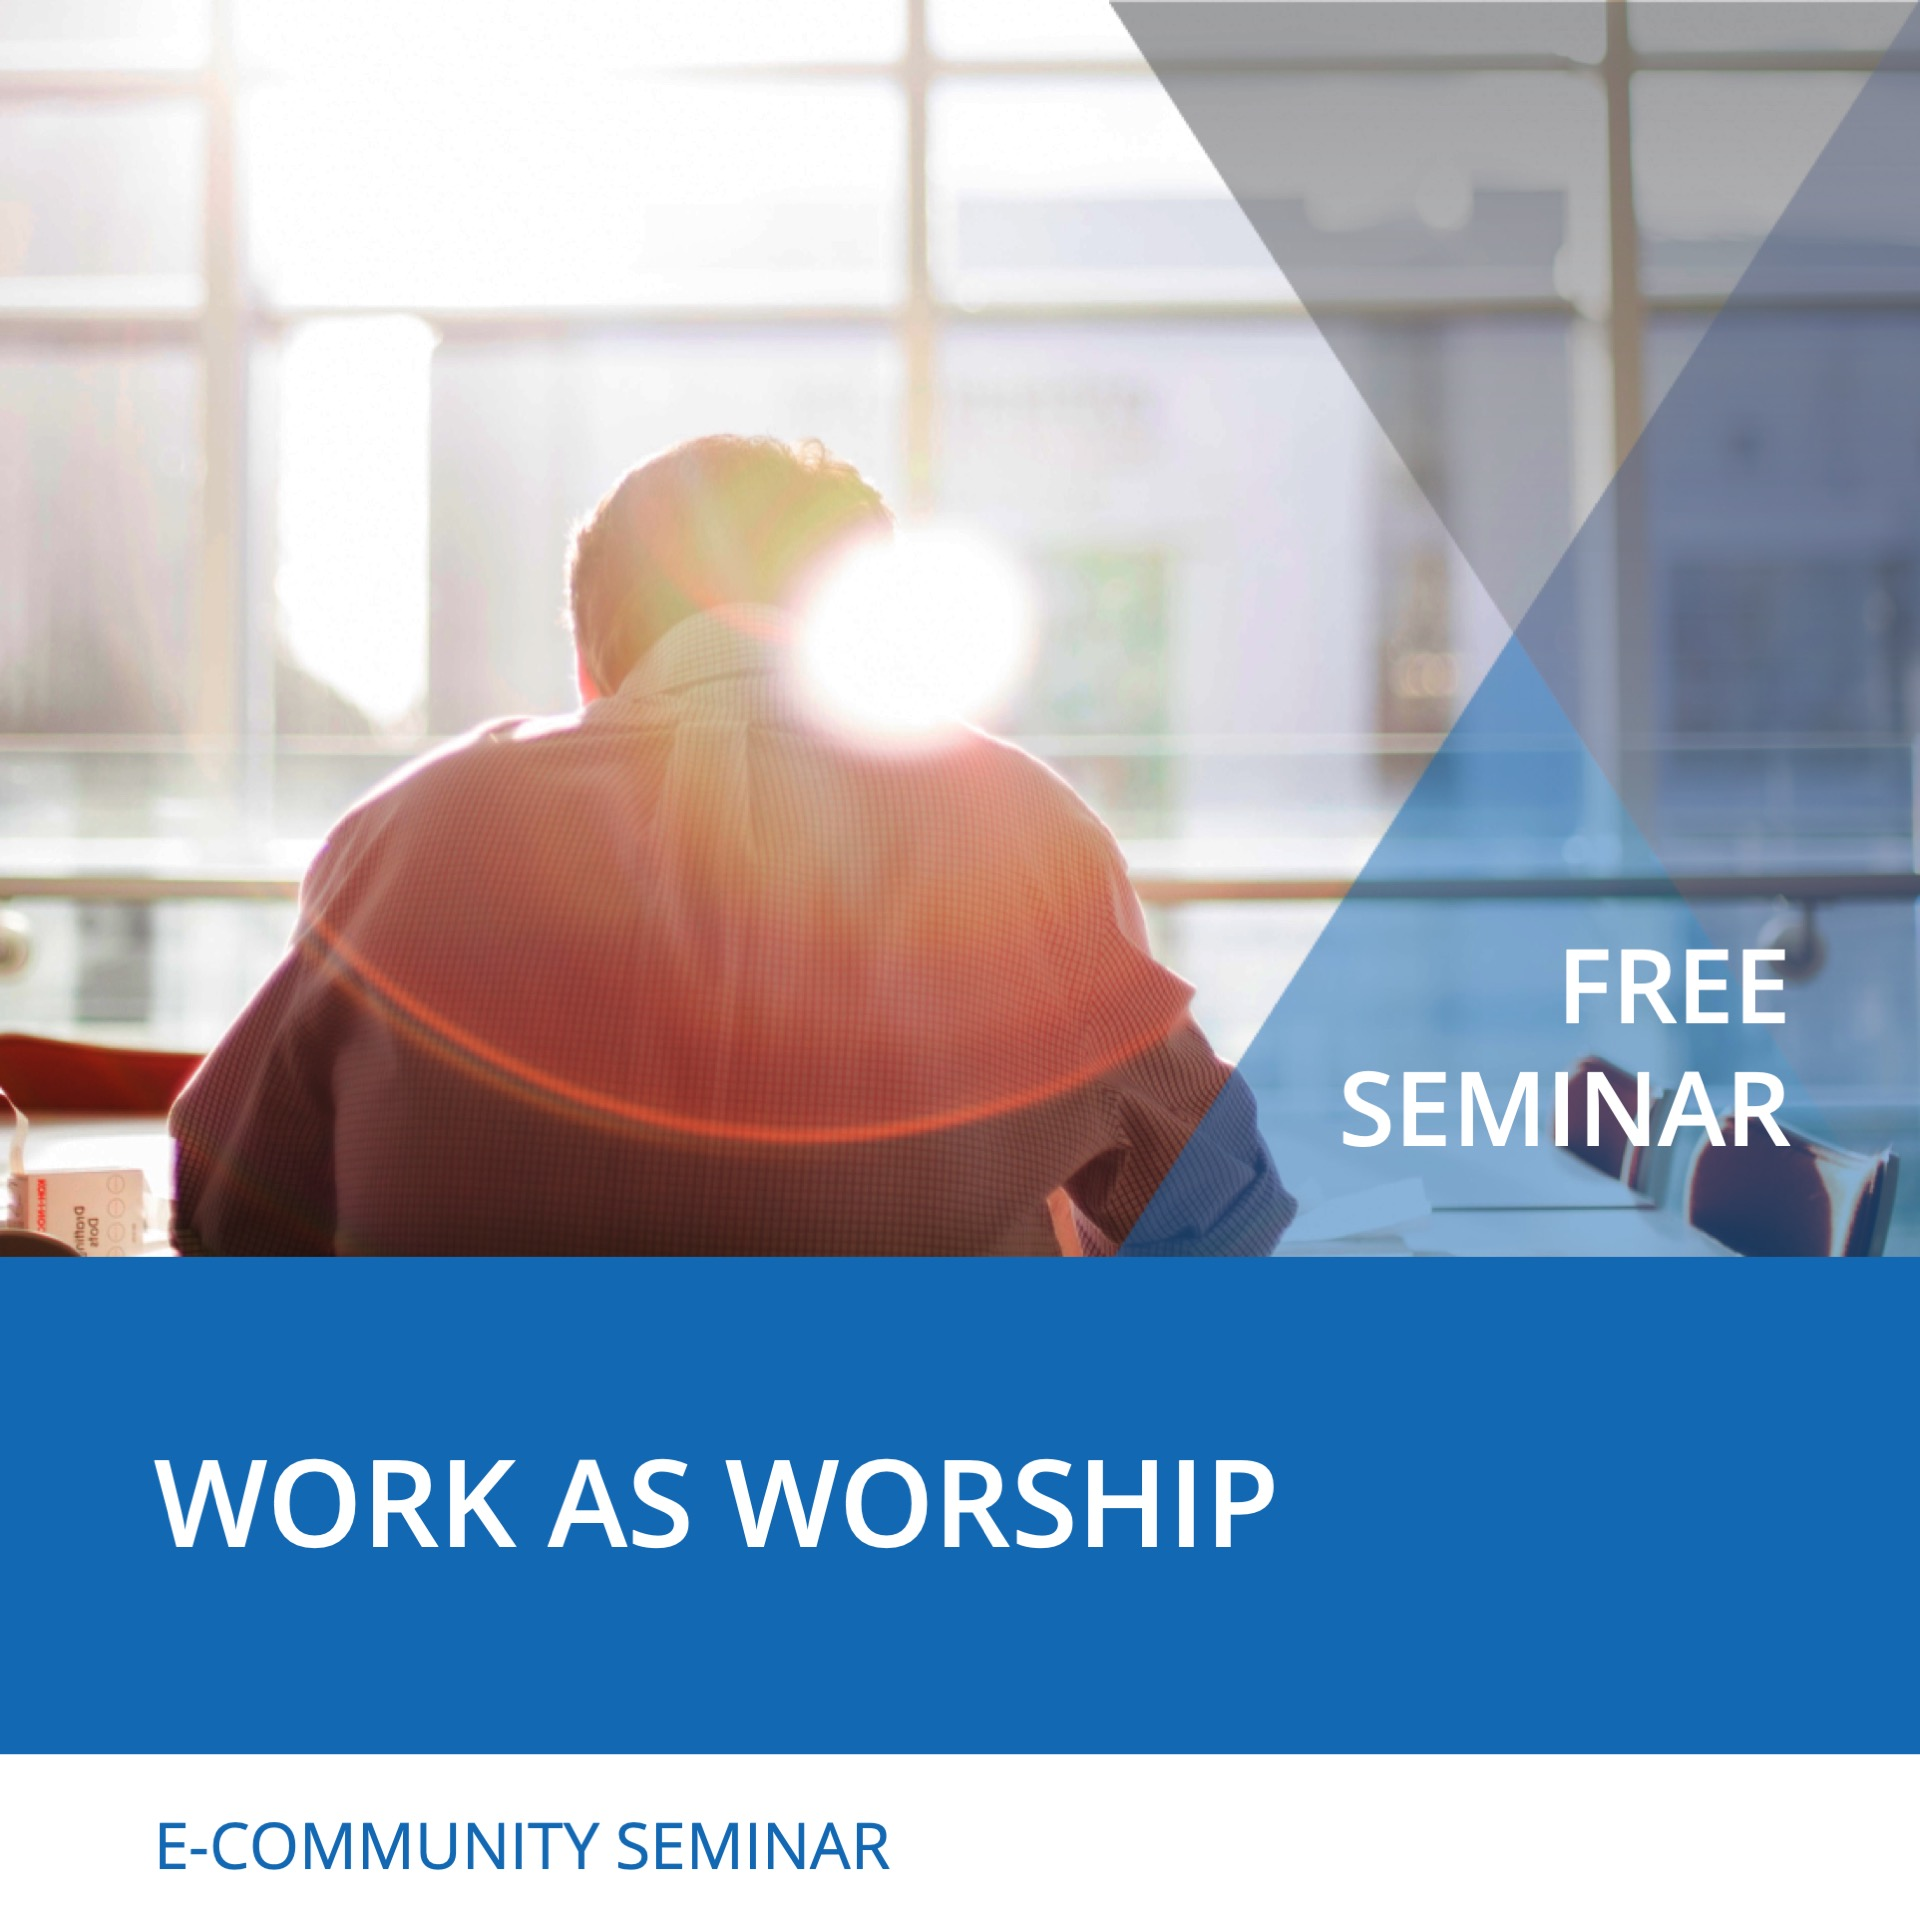 Seminar Wok as Worship - Nehemiah E-Community